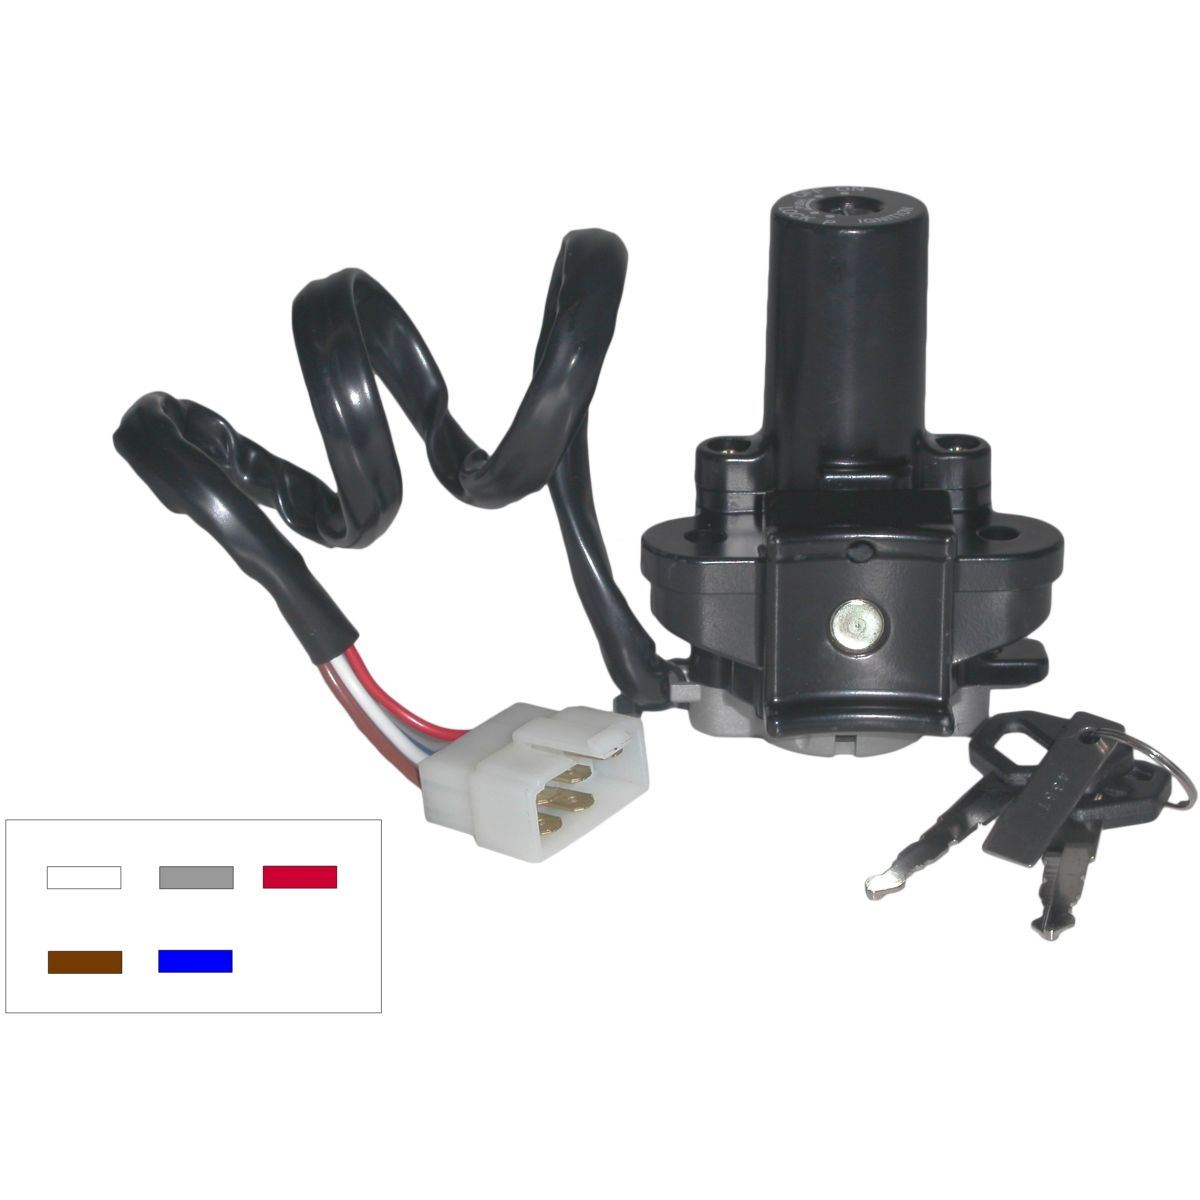 Ignition Switch for 1999 Kawasaki ZX-6R ZX600G2